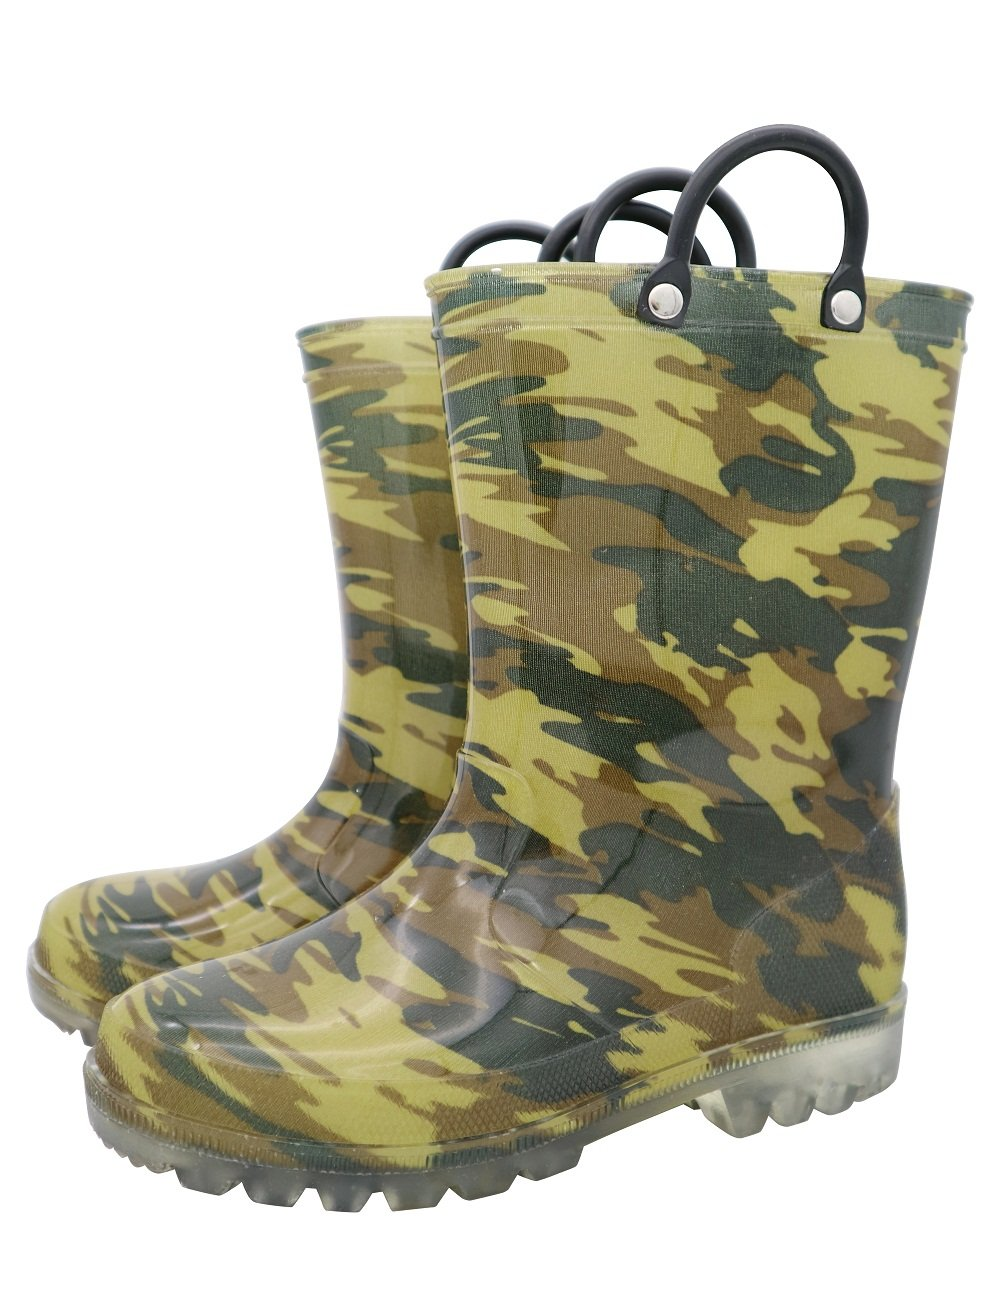 TQ Homebase Boys Rain Boots in Camo Pattern with Easy on Handles and Fully Waterproof at Sizes for Toddlers and Kids 9 M